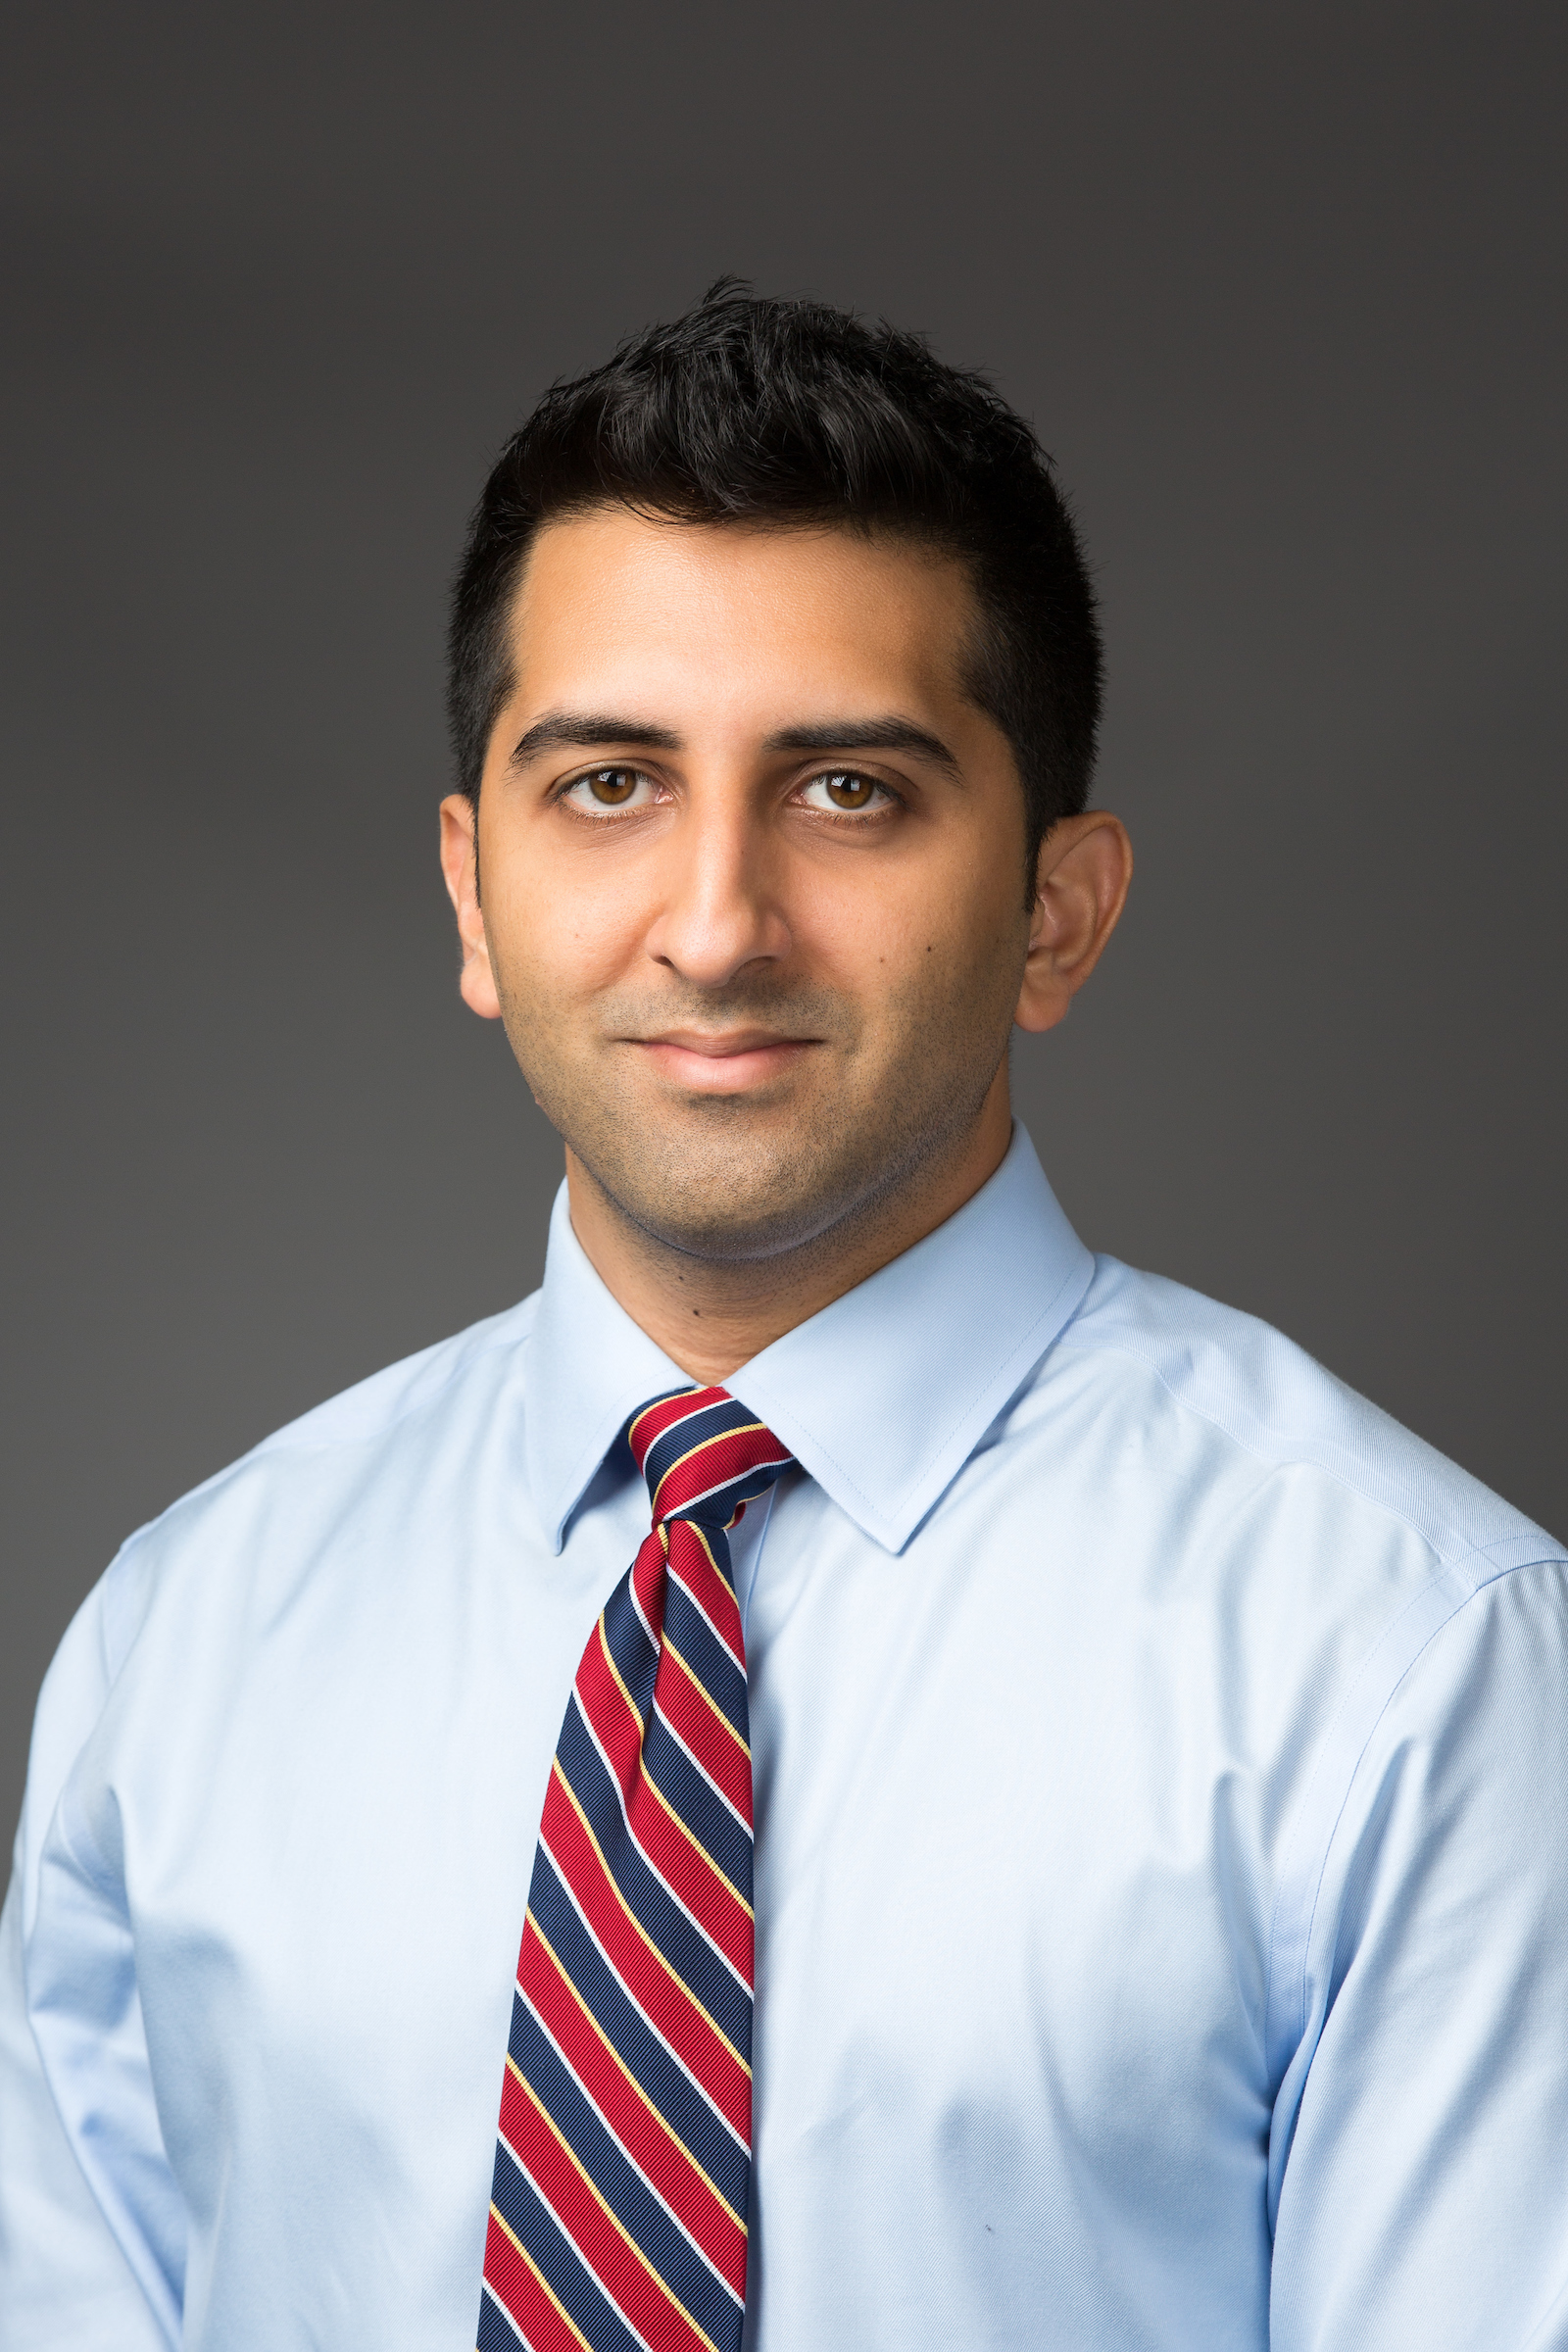 Shivam Kharod Physician Resident Radiation Oncology University of Florida